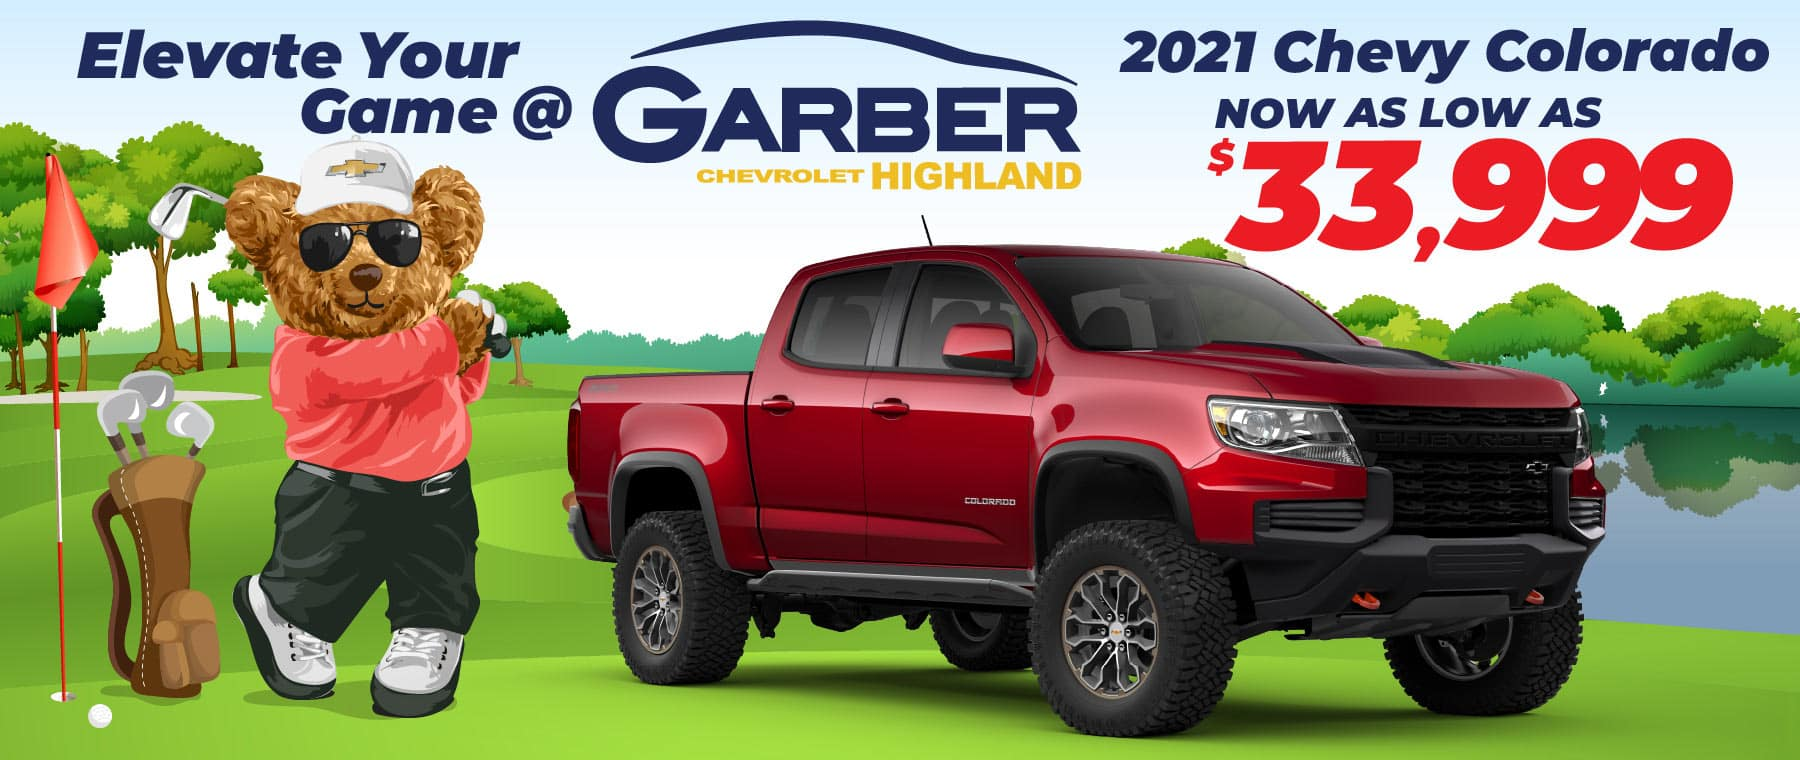 2021 Chevy Colorado - now as low as $33,999